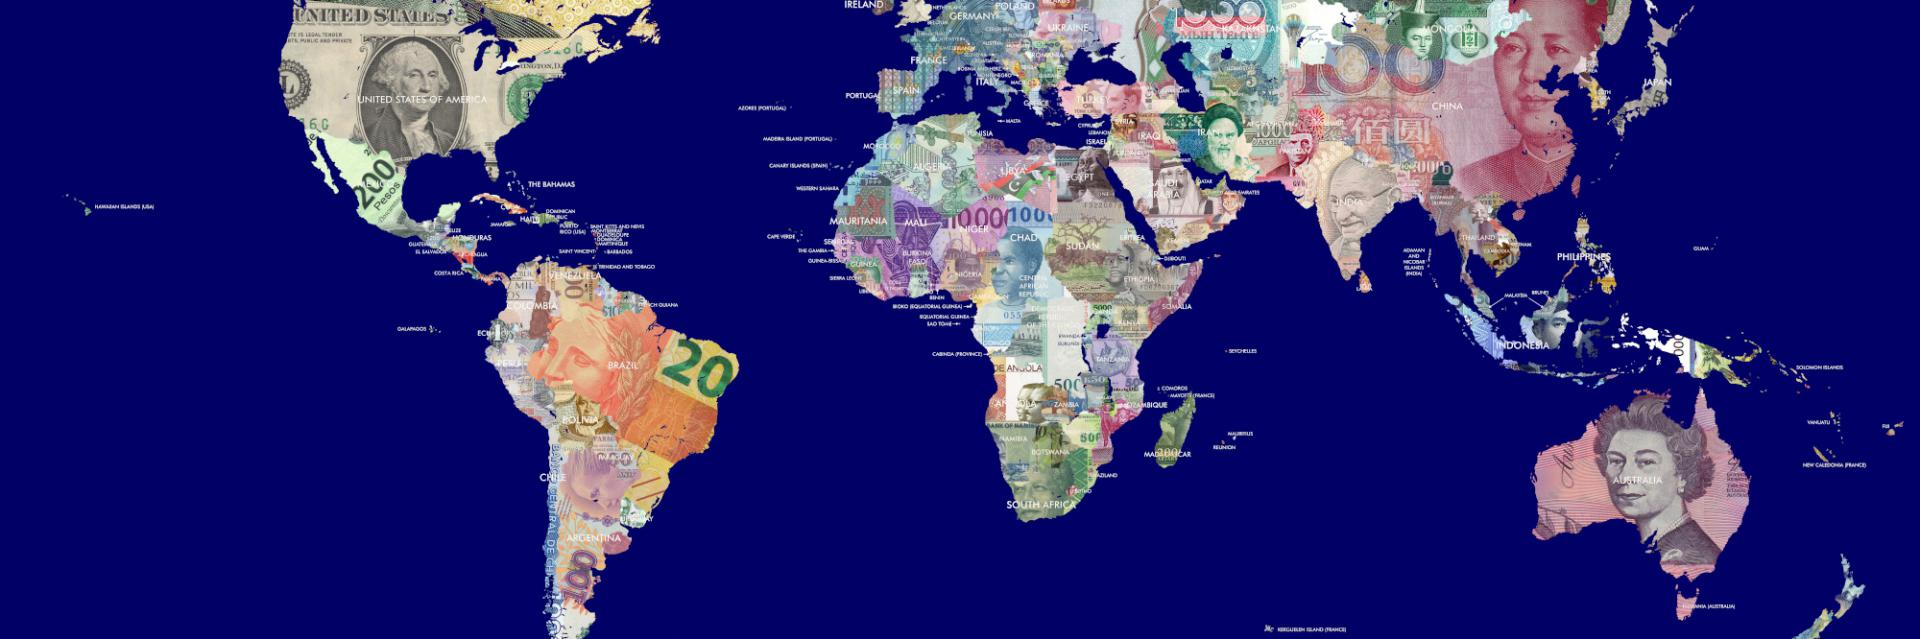 African countries must be transparent and accountable in managing sovereign debt